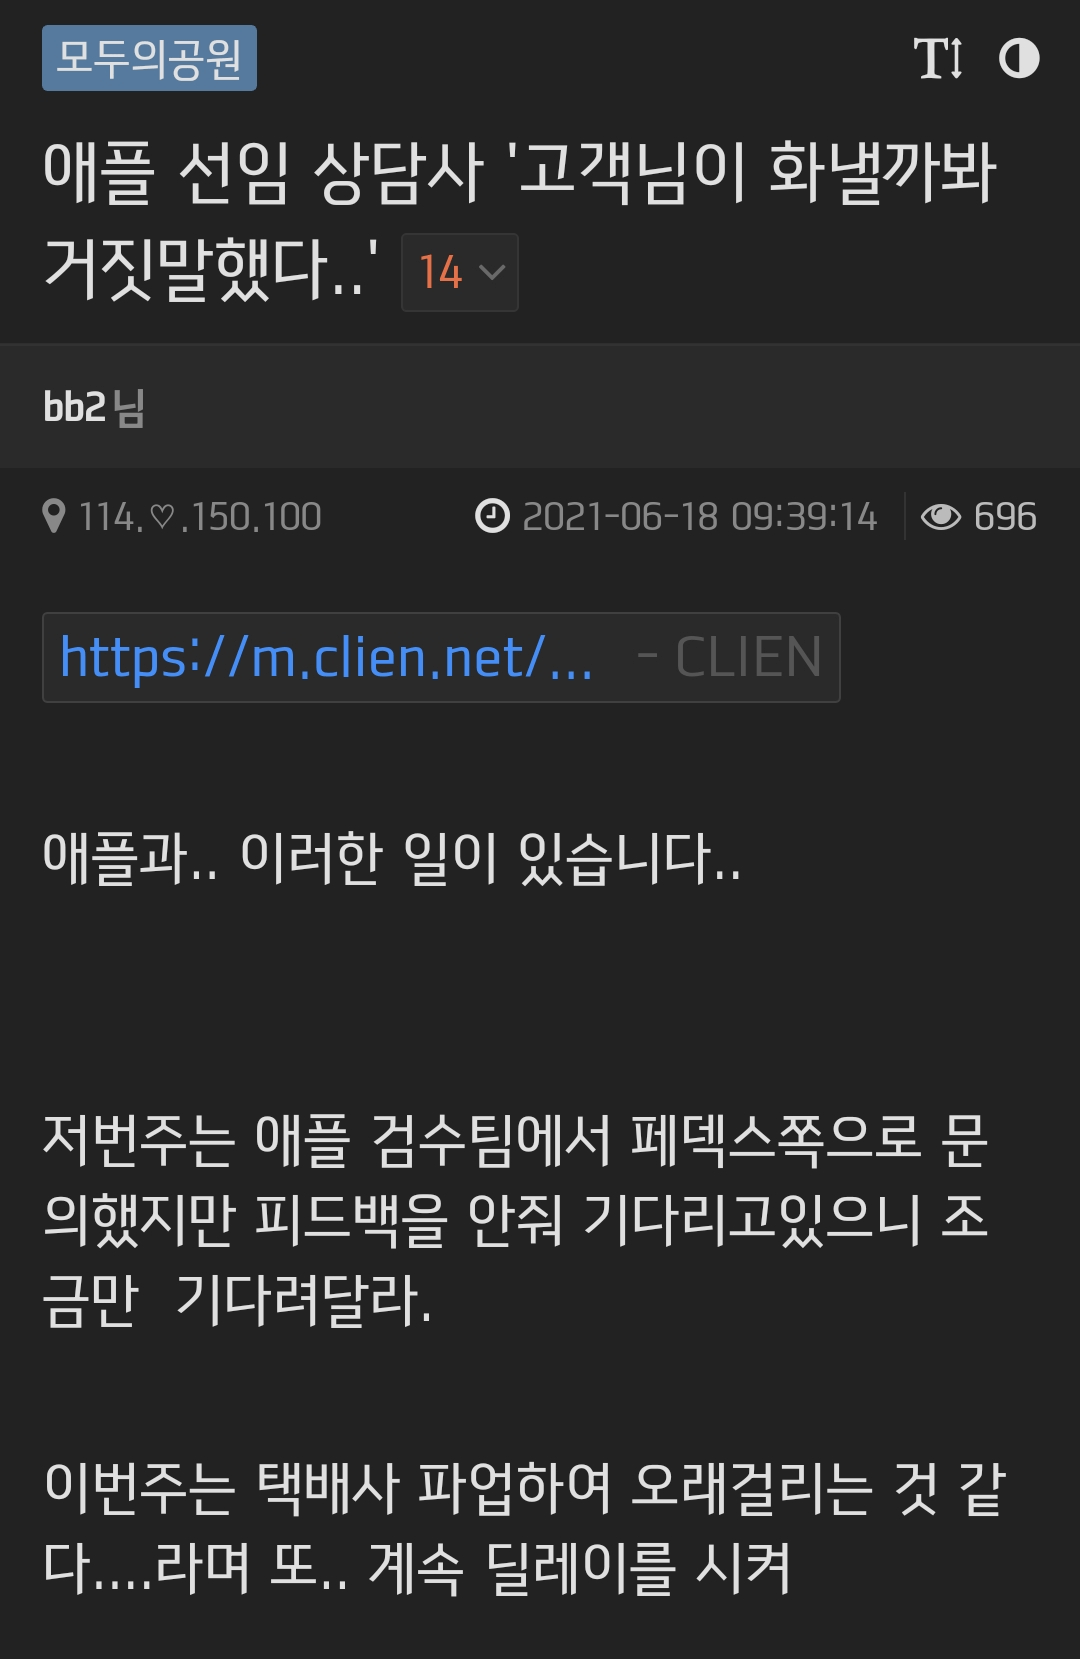 3917BAD6-C774-4BE2-AEFE-A6736F5D3232.png 애플 빅서게이트 시즌 2 ON